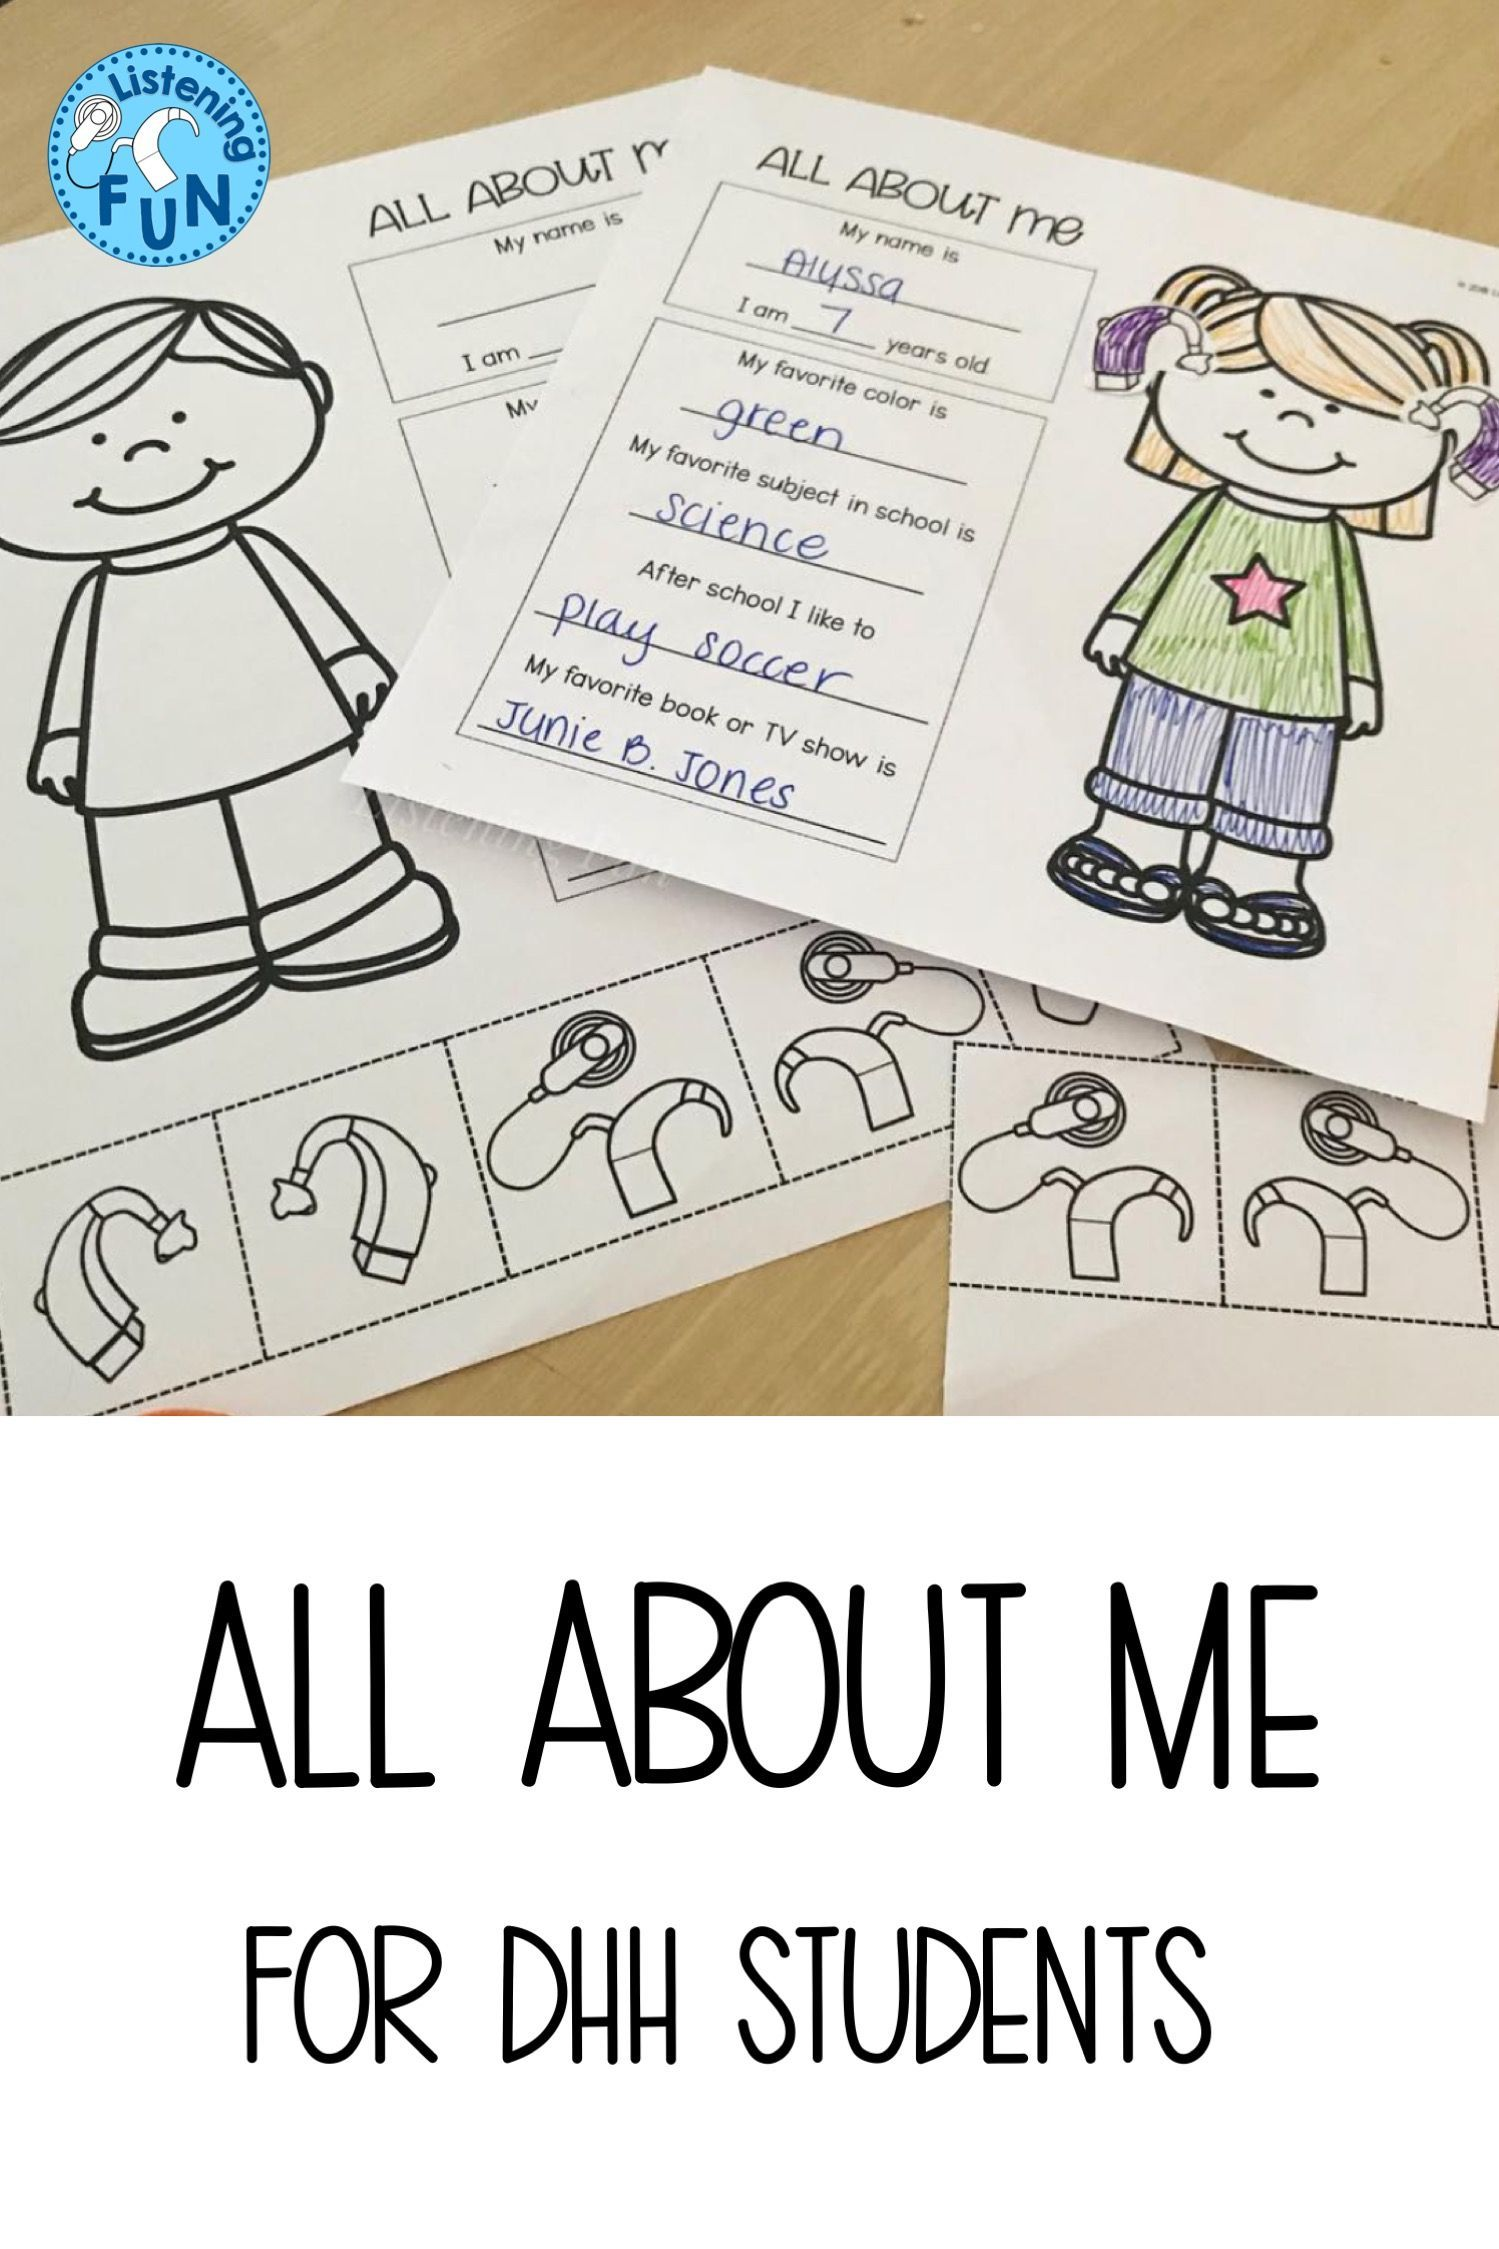 Back To School About Me For Dhh Students